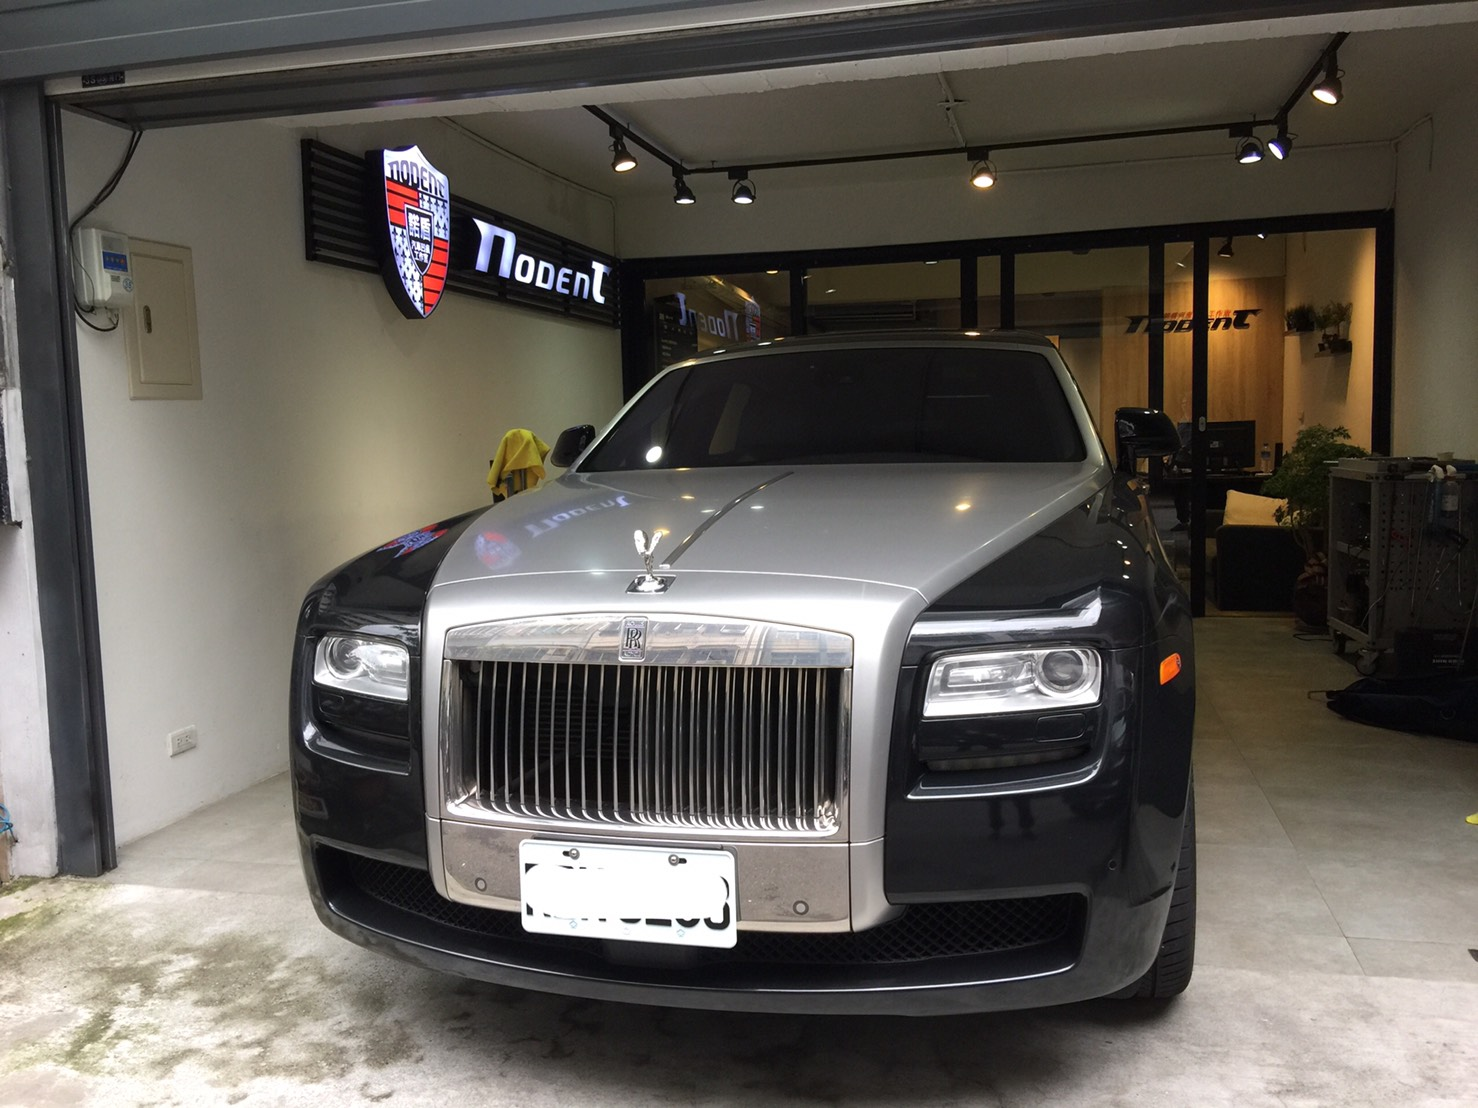 Rolls-Royce phantom 門鈑酒窩修復